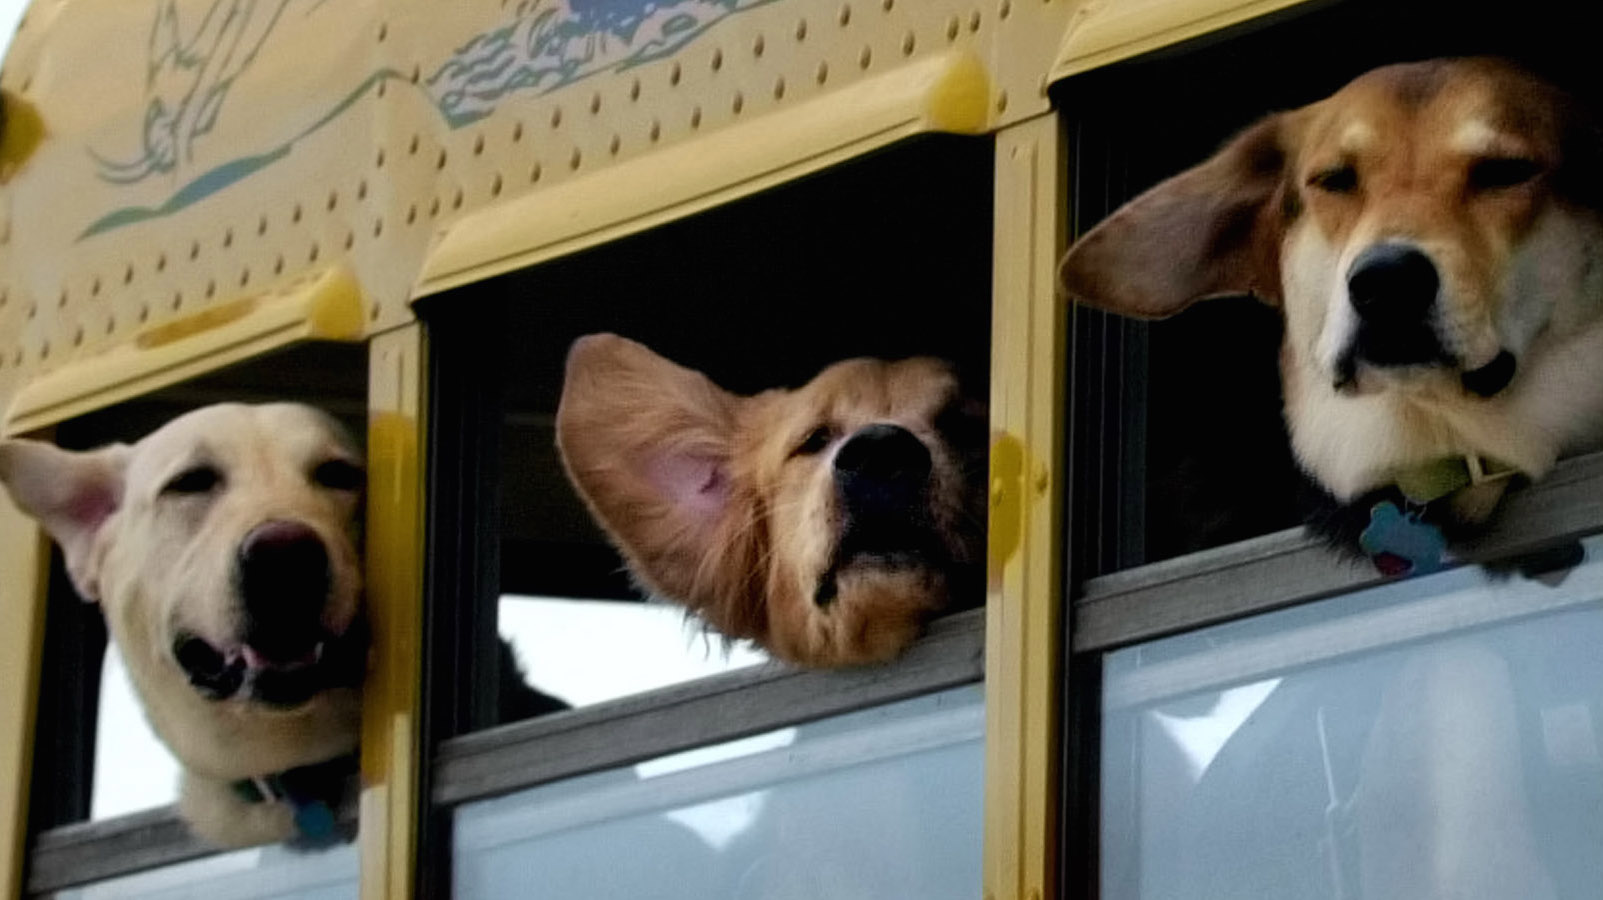 ADVANCE FOR MON. JAN 22-- Ozzie, left, Joey, center, and Summer, right, look out of bus windows as they ride to the Totally Dog Training and Day Camp, Wednesday, Jan. 17, 2001, in Homestead, Fla. Owners pay $200 for a four-day training session before the dog is introduced to the group at the camp. After that, camp costs $35 a day, which includes transportation and snacks.